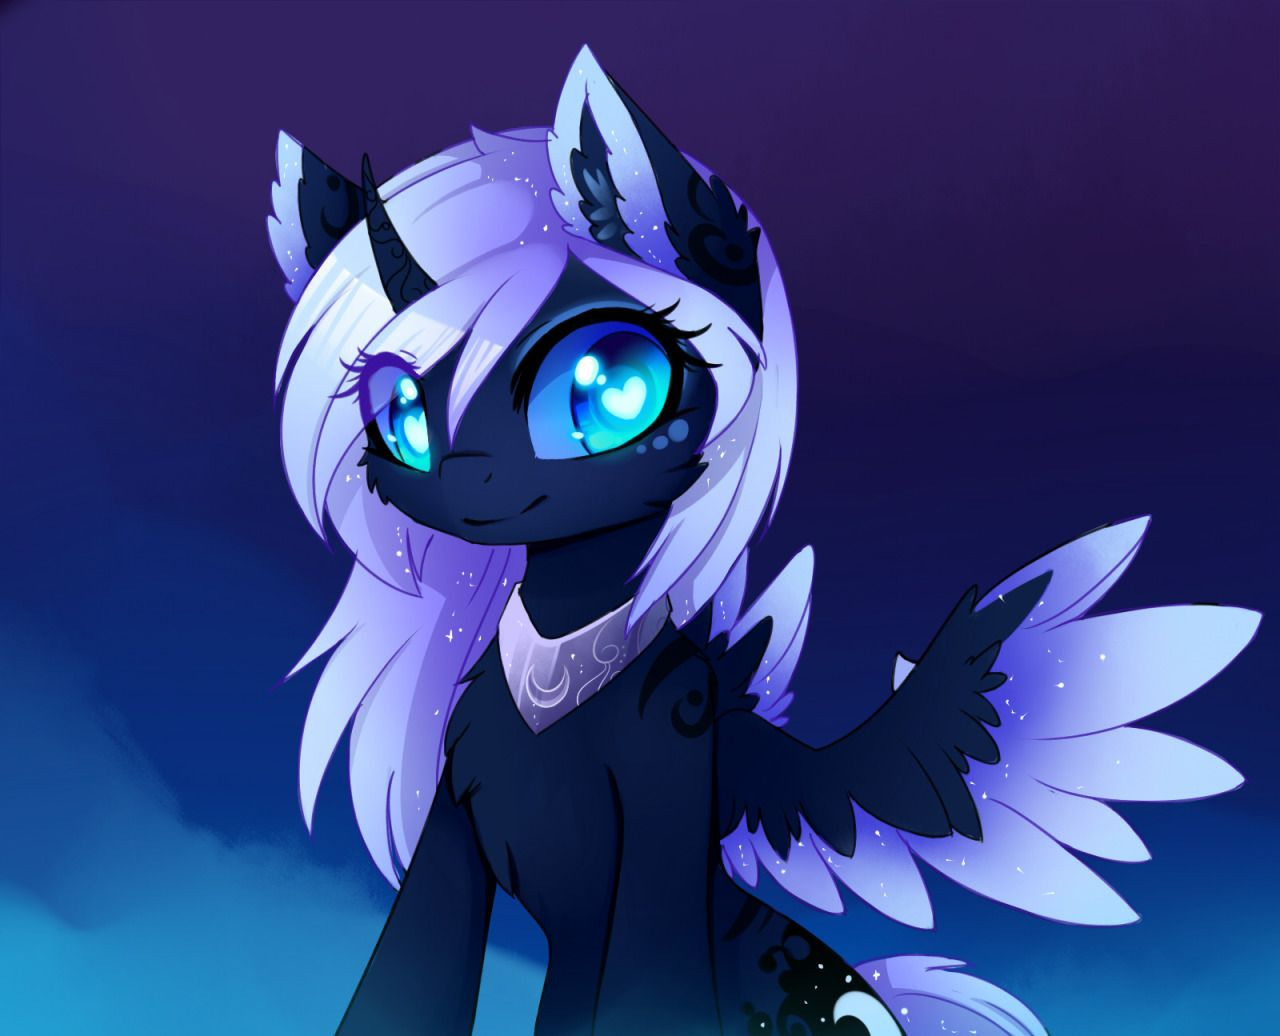 quotam i prettyquot mlp princess luna mlp princess luna